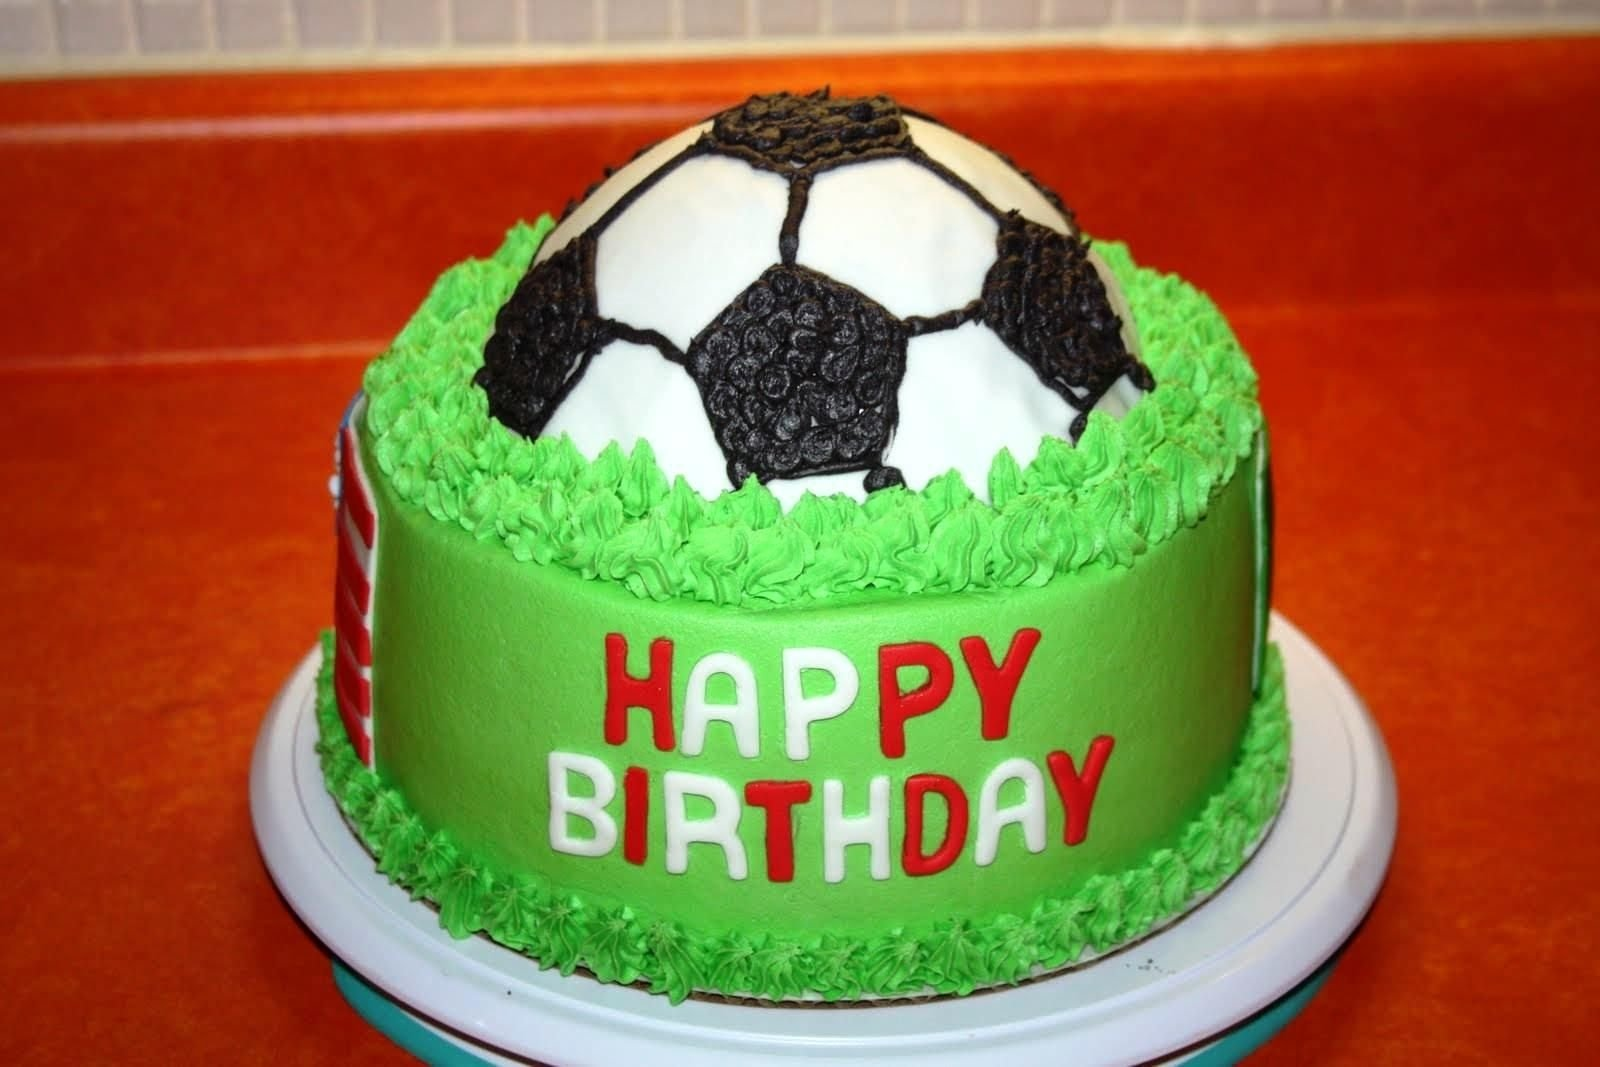 16th birthday cakes ideas for boys — some enjoyable pictures